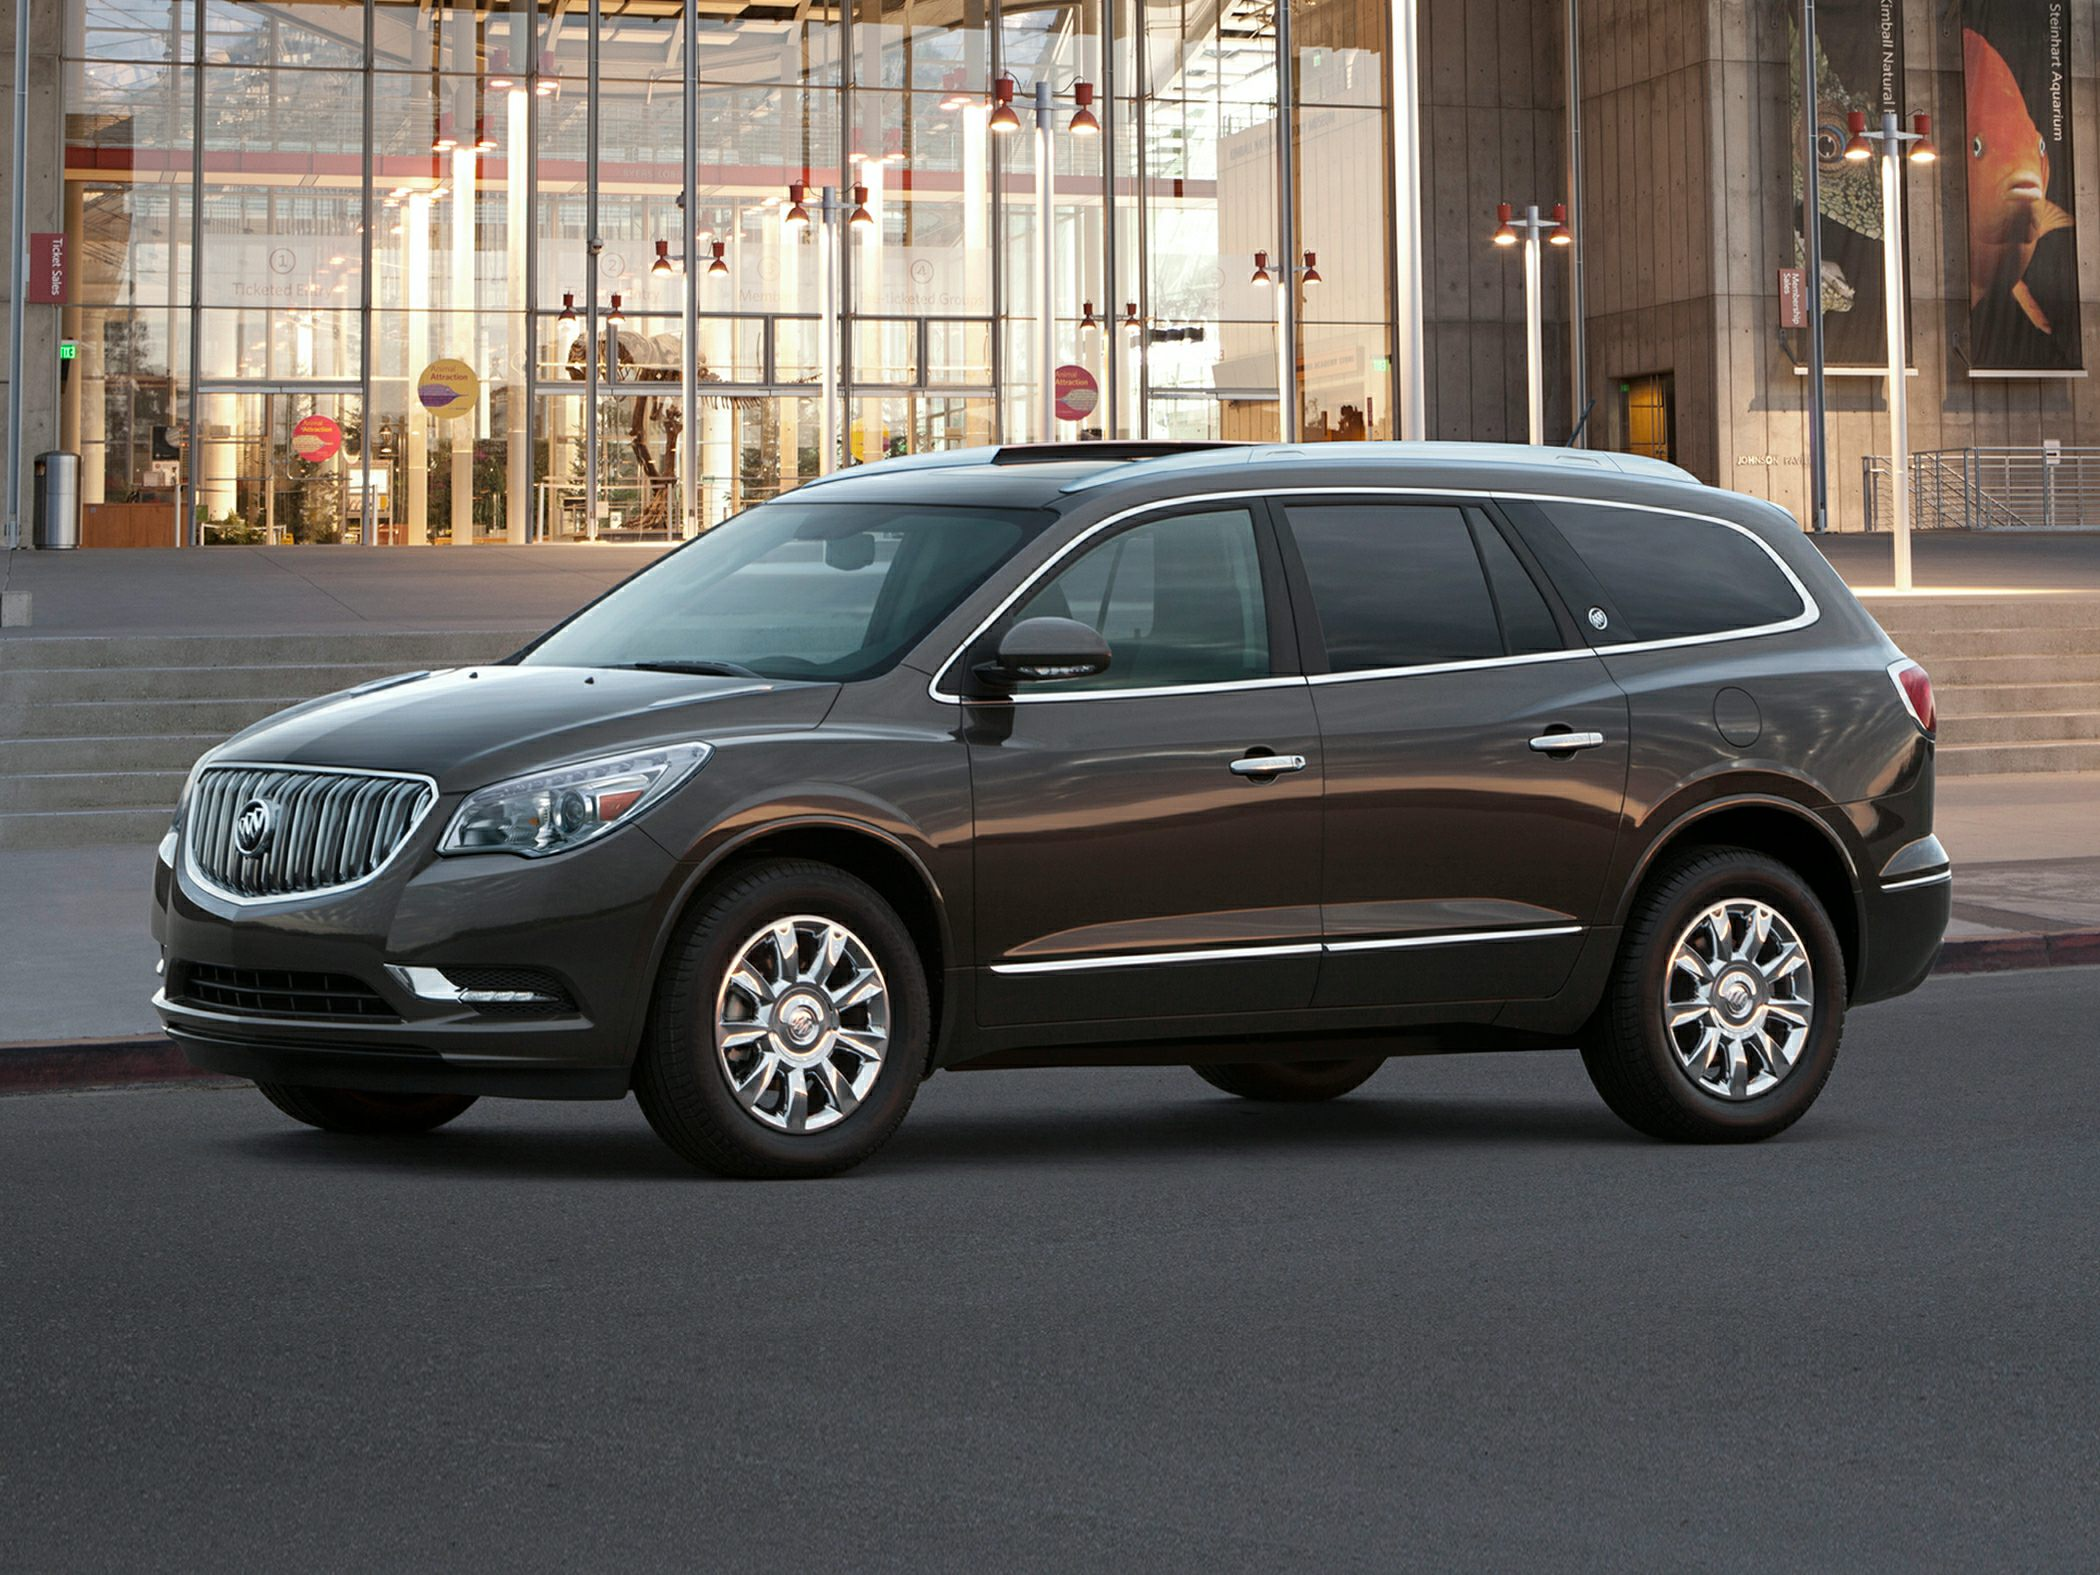 2013 Buick Enclave Leather Group Courtesy vehicle  Includes factory rebates This Enclave is nice